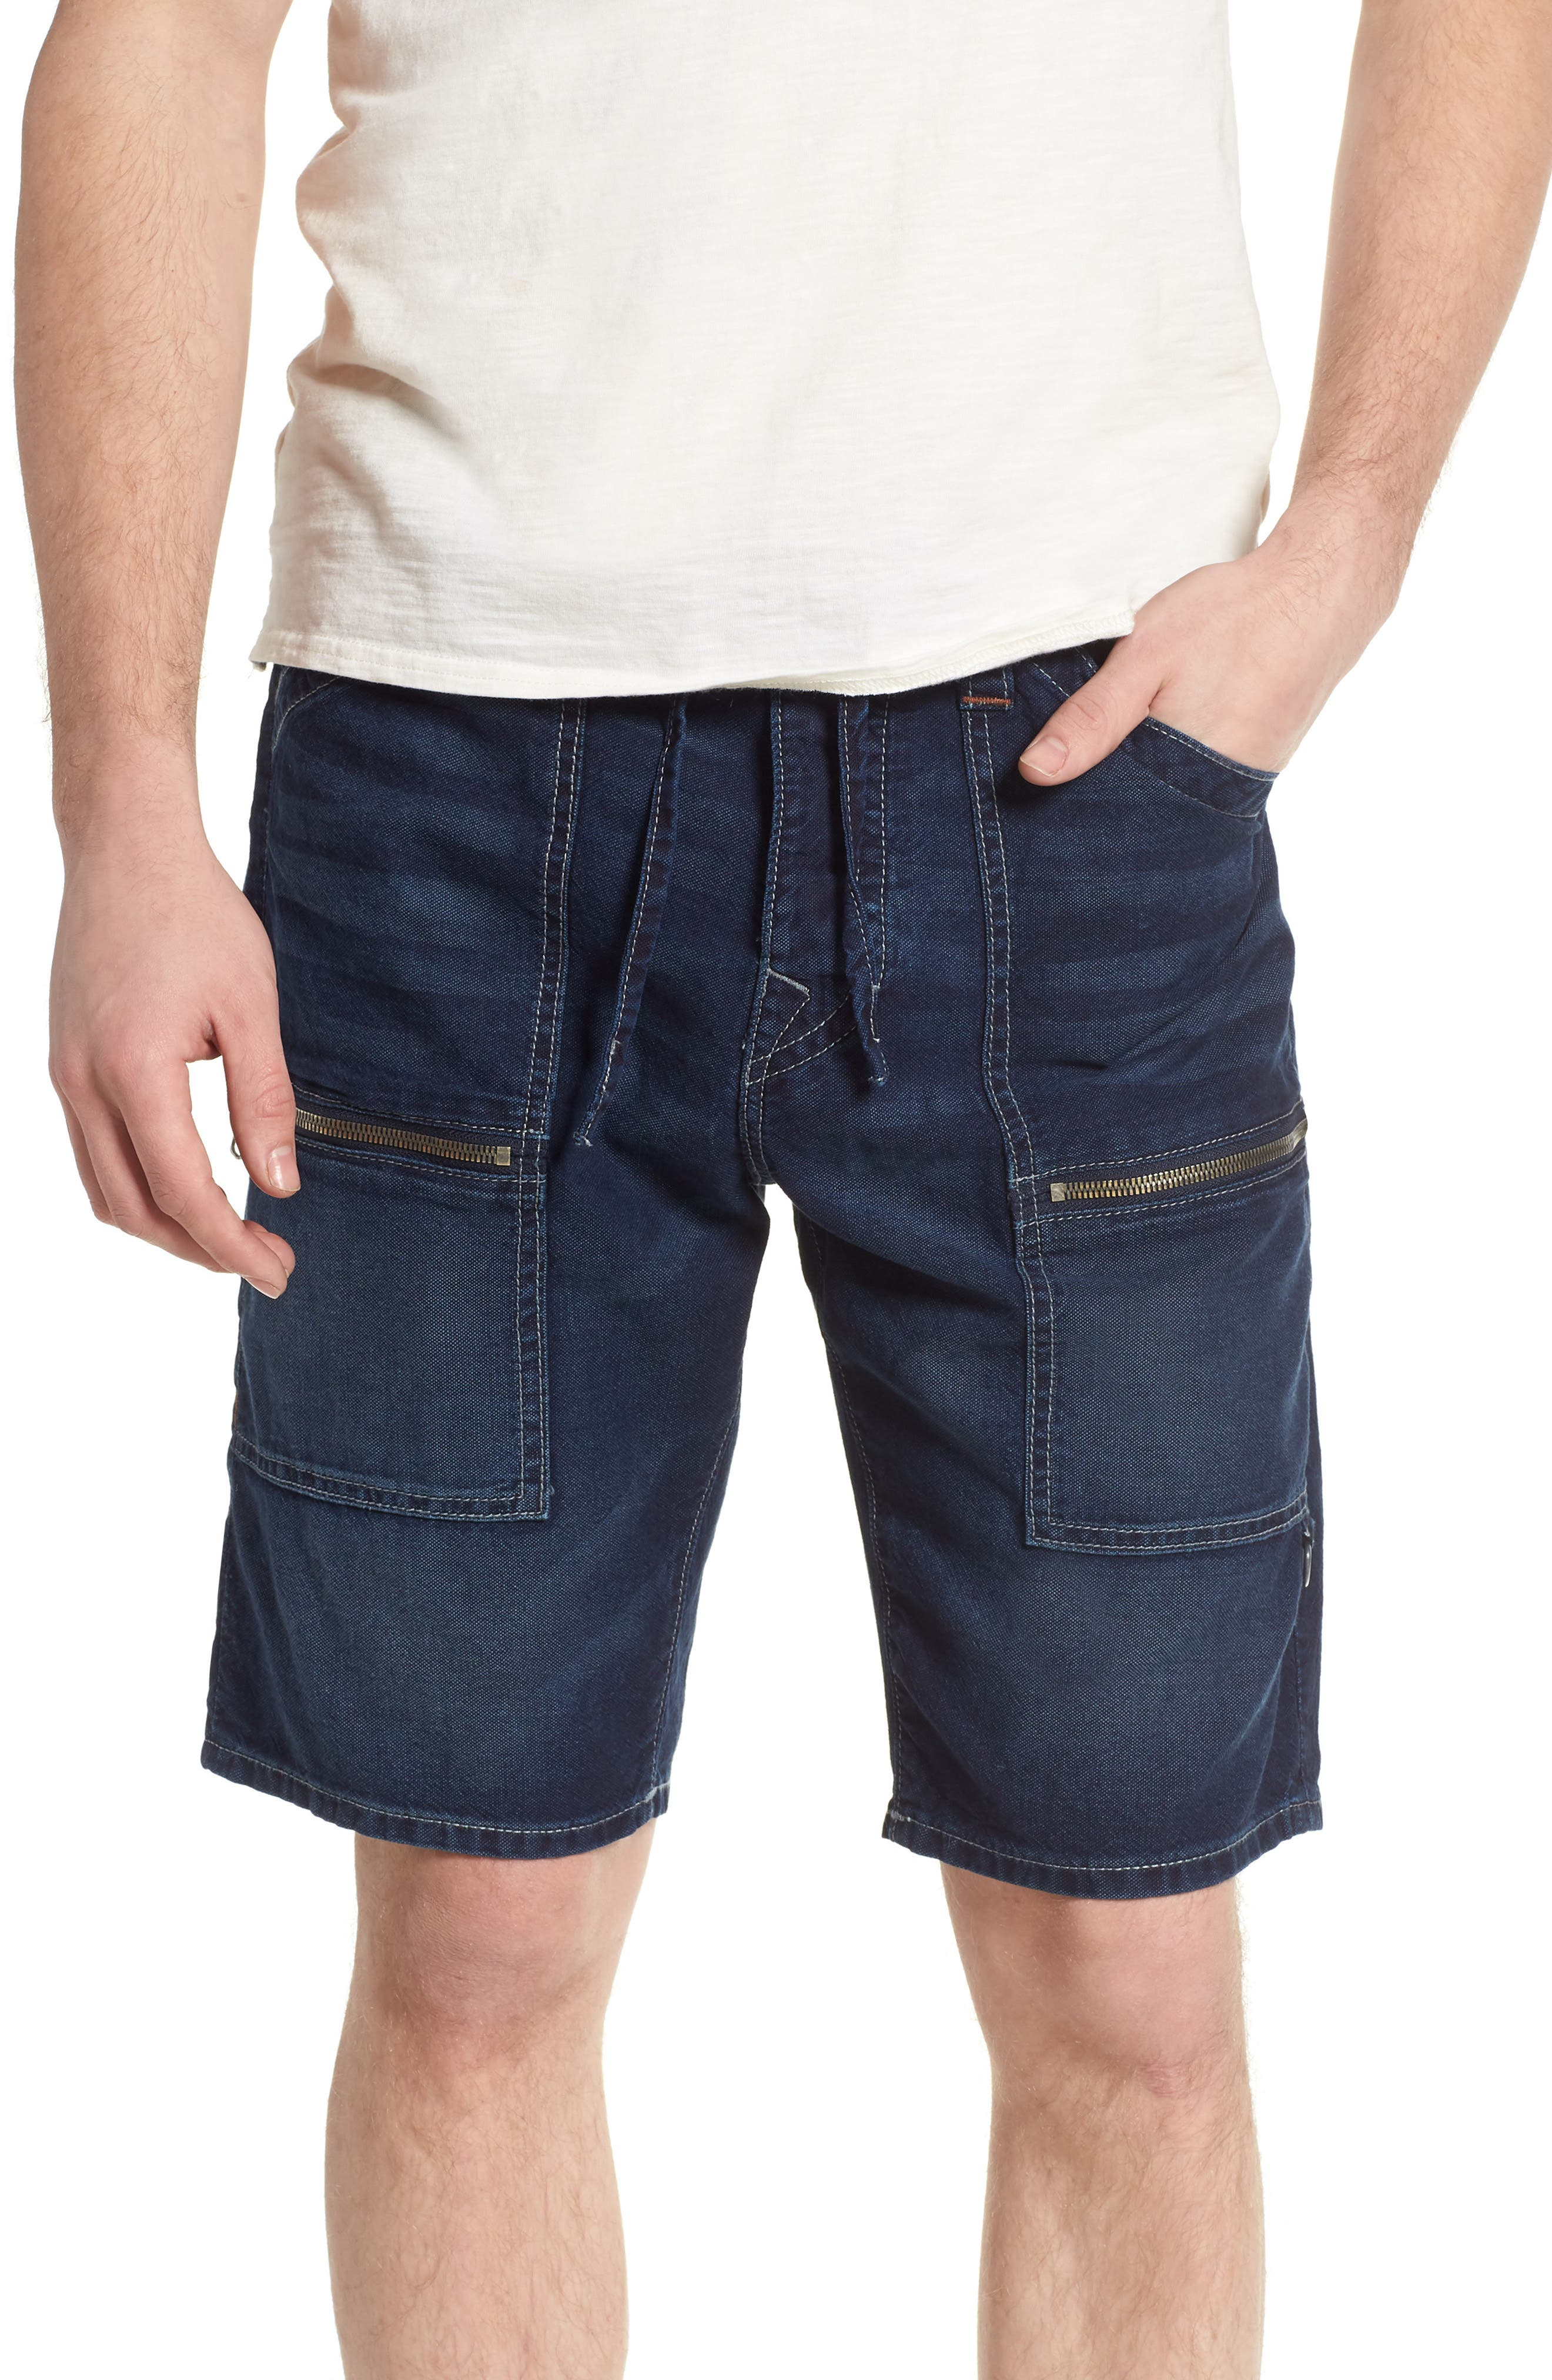 Trail Utility Shorts,                             Main thumbnail 1, color,                             Eqdd Union Special